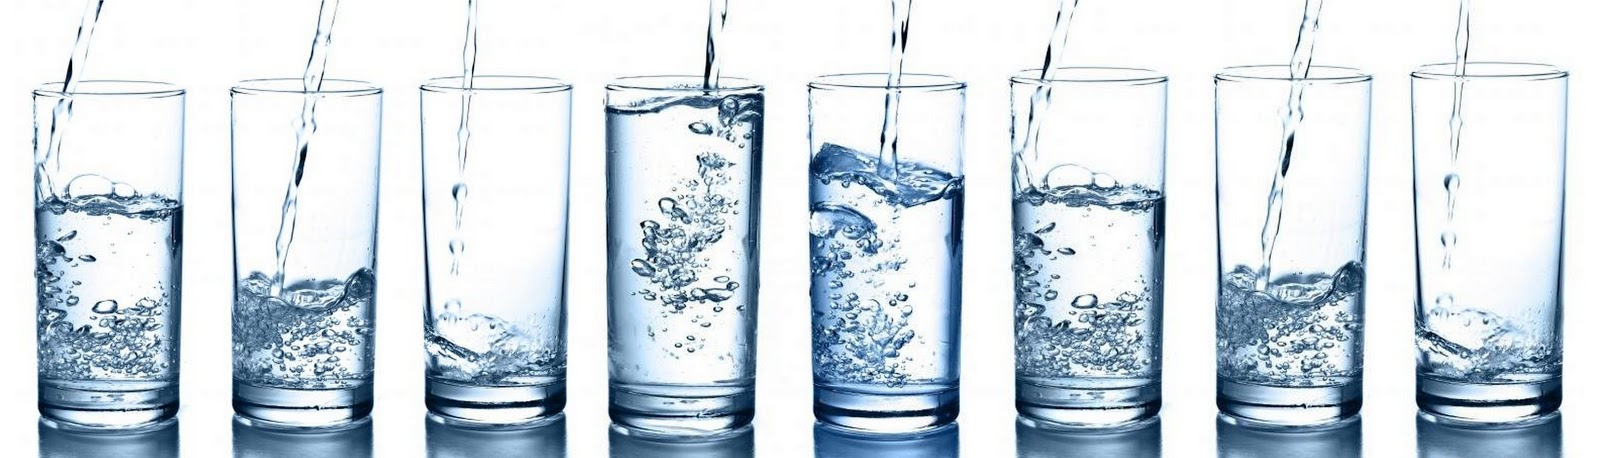 8 Glasses Of Water Clipart.